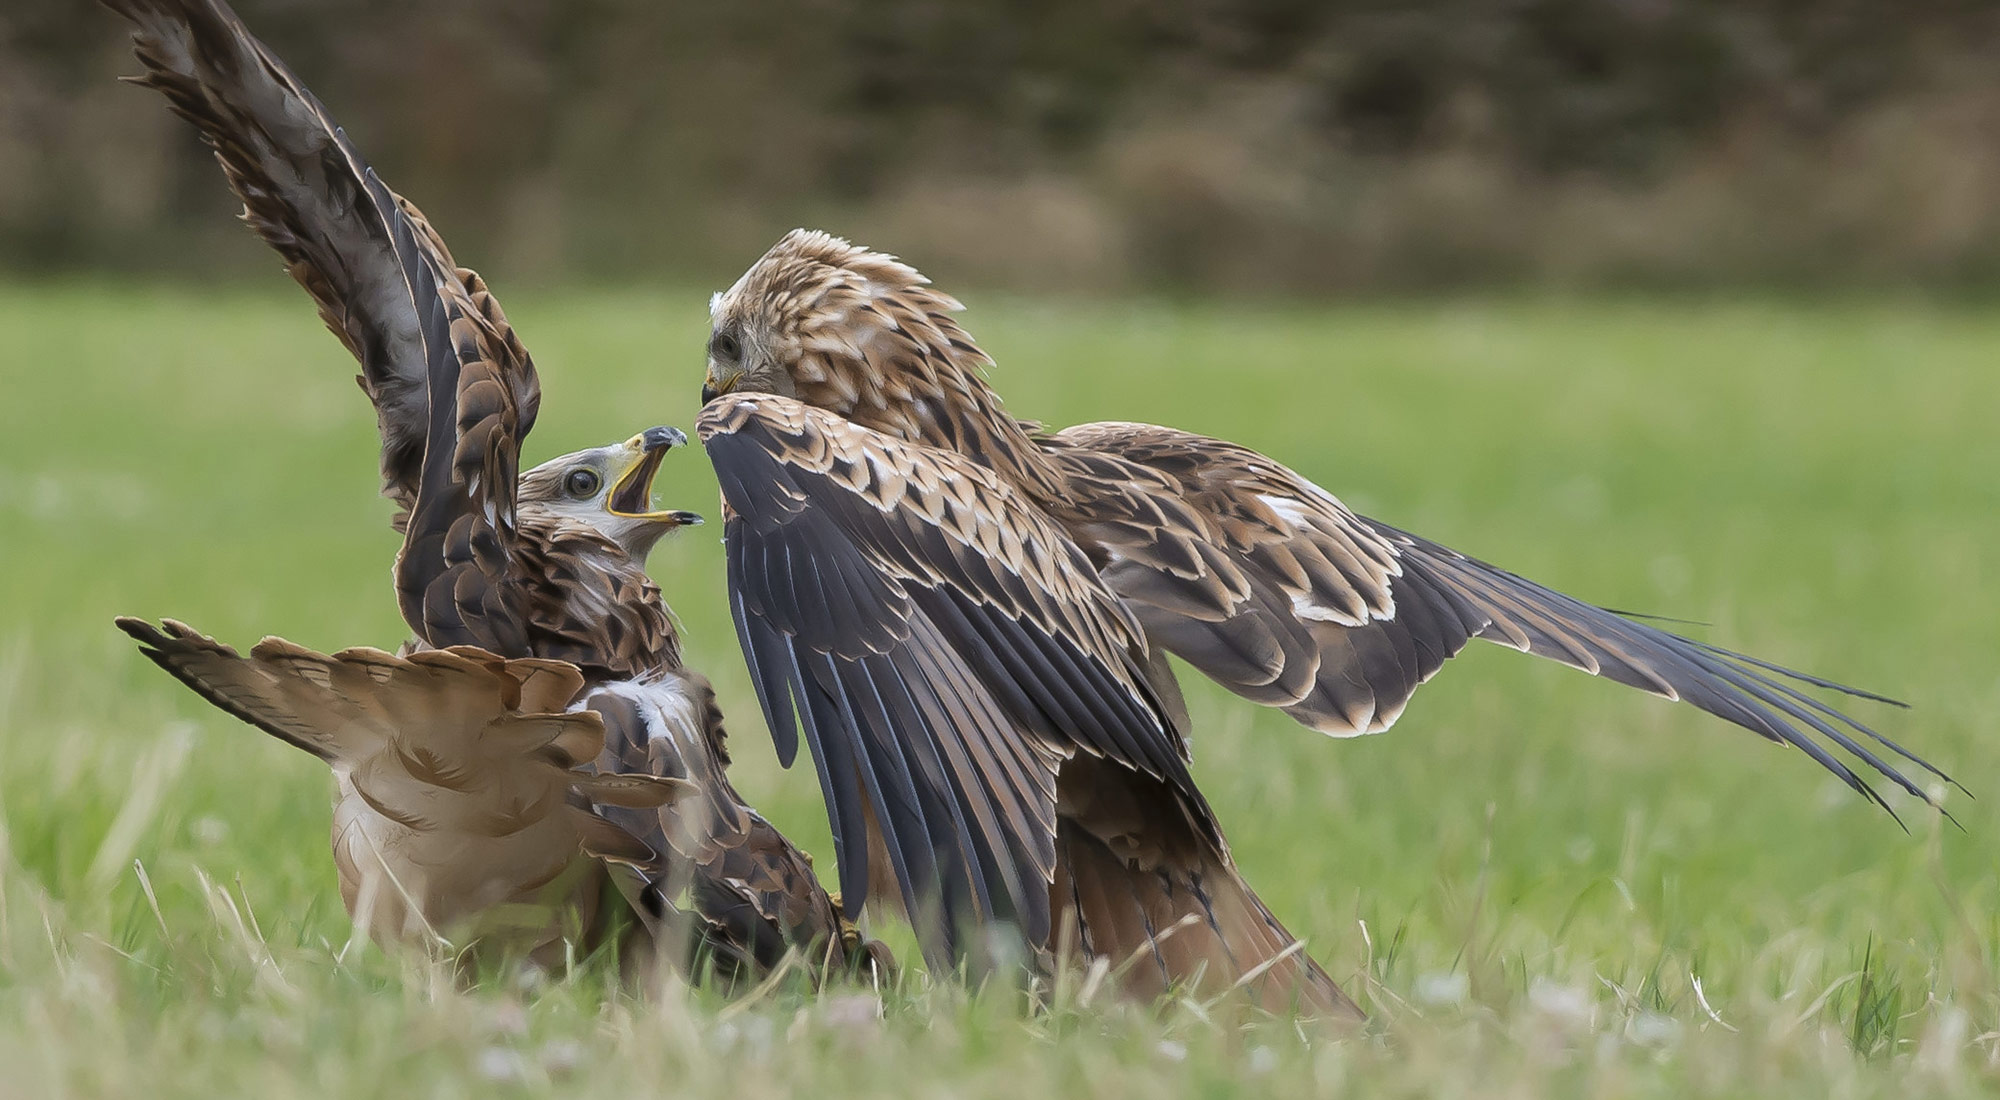 Wildlife Photography Hides Hide photography Bourne Lincolnshire tom robinson rental red kite carrion fighting juveniles raptor green grass young immature feeding